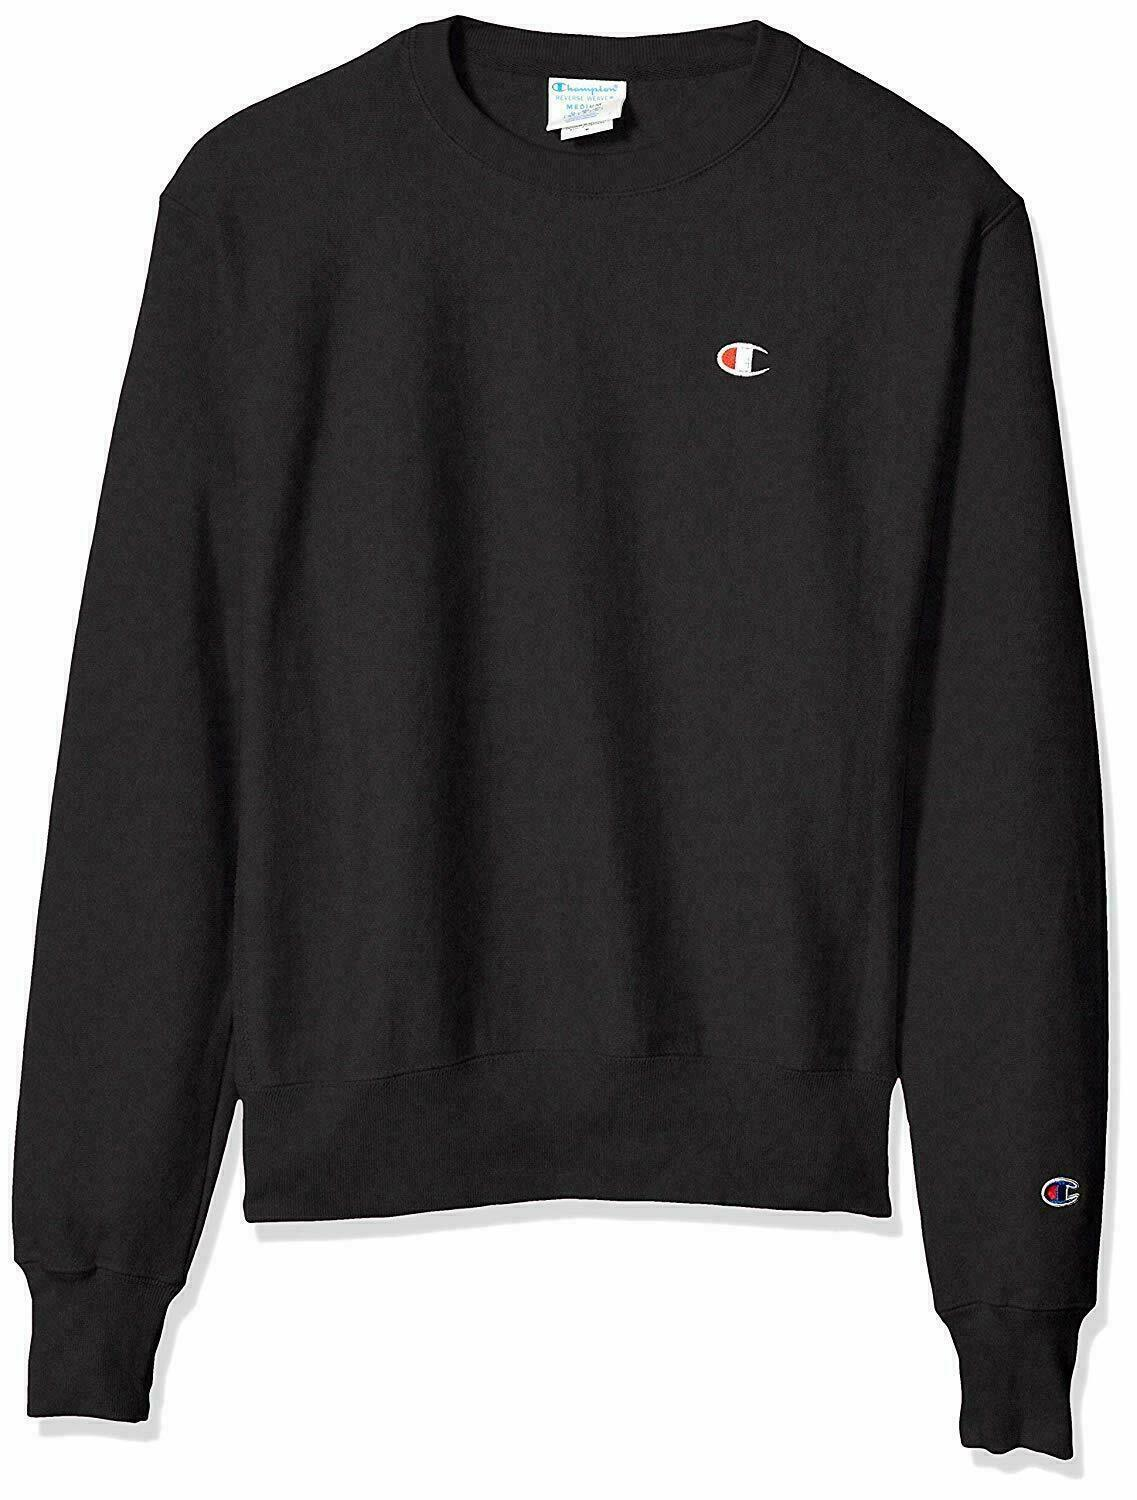 Champion Life Reverse Weave Sweatshirt Black Men's Medium Crew Neck Long Sleeve image 2